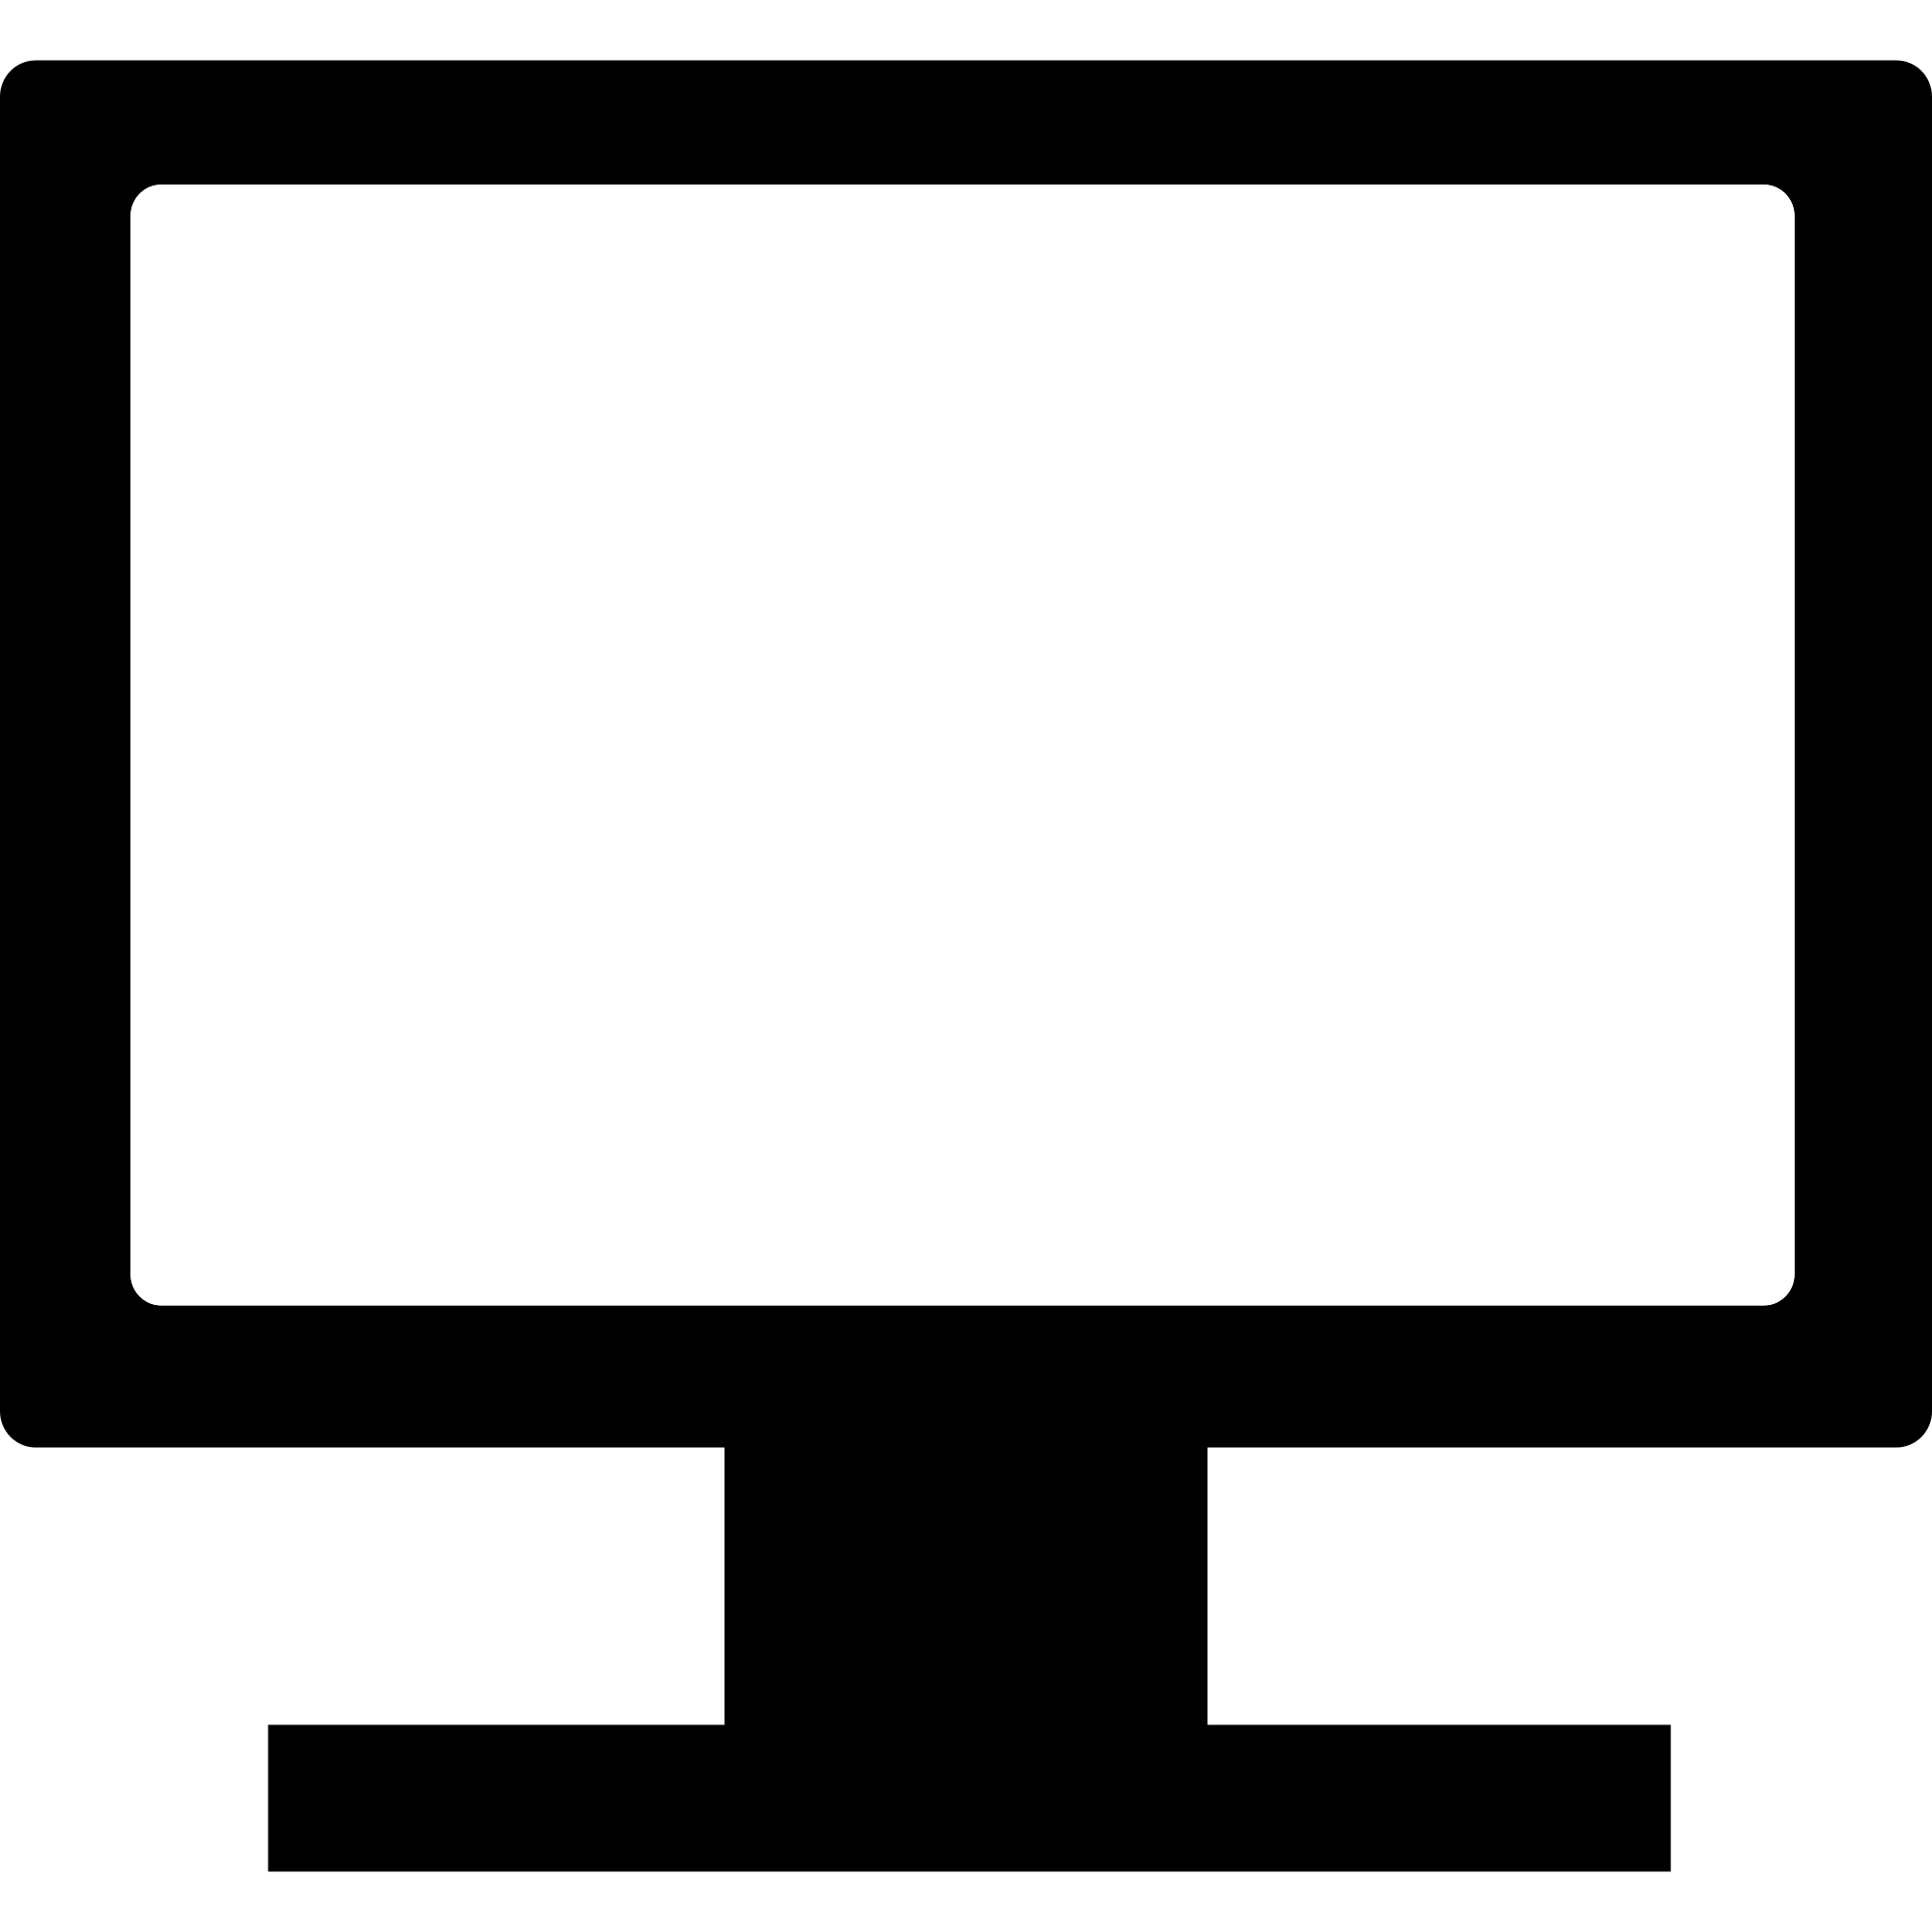 png transparent download File lab icon wikimedia. Computer svg black and white